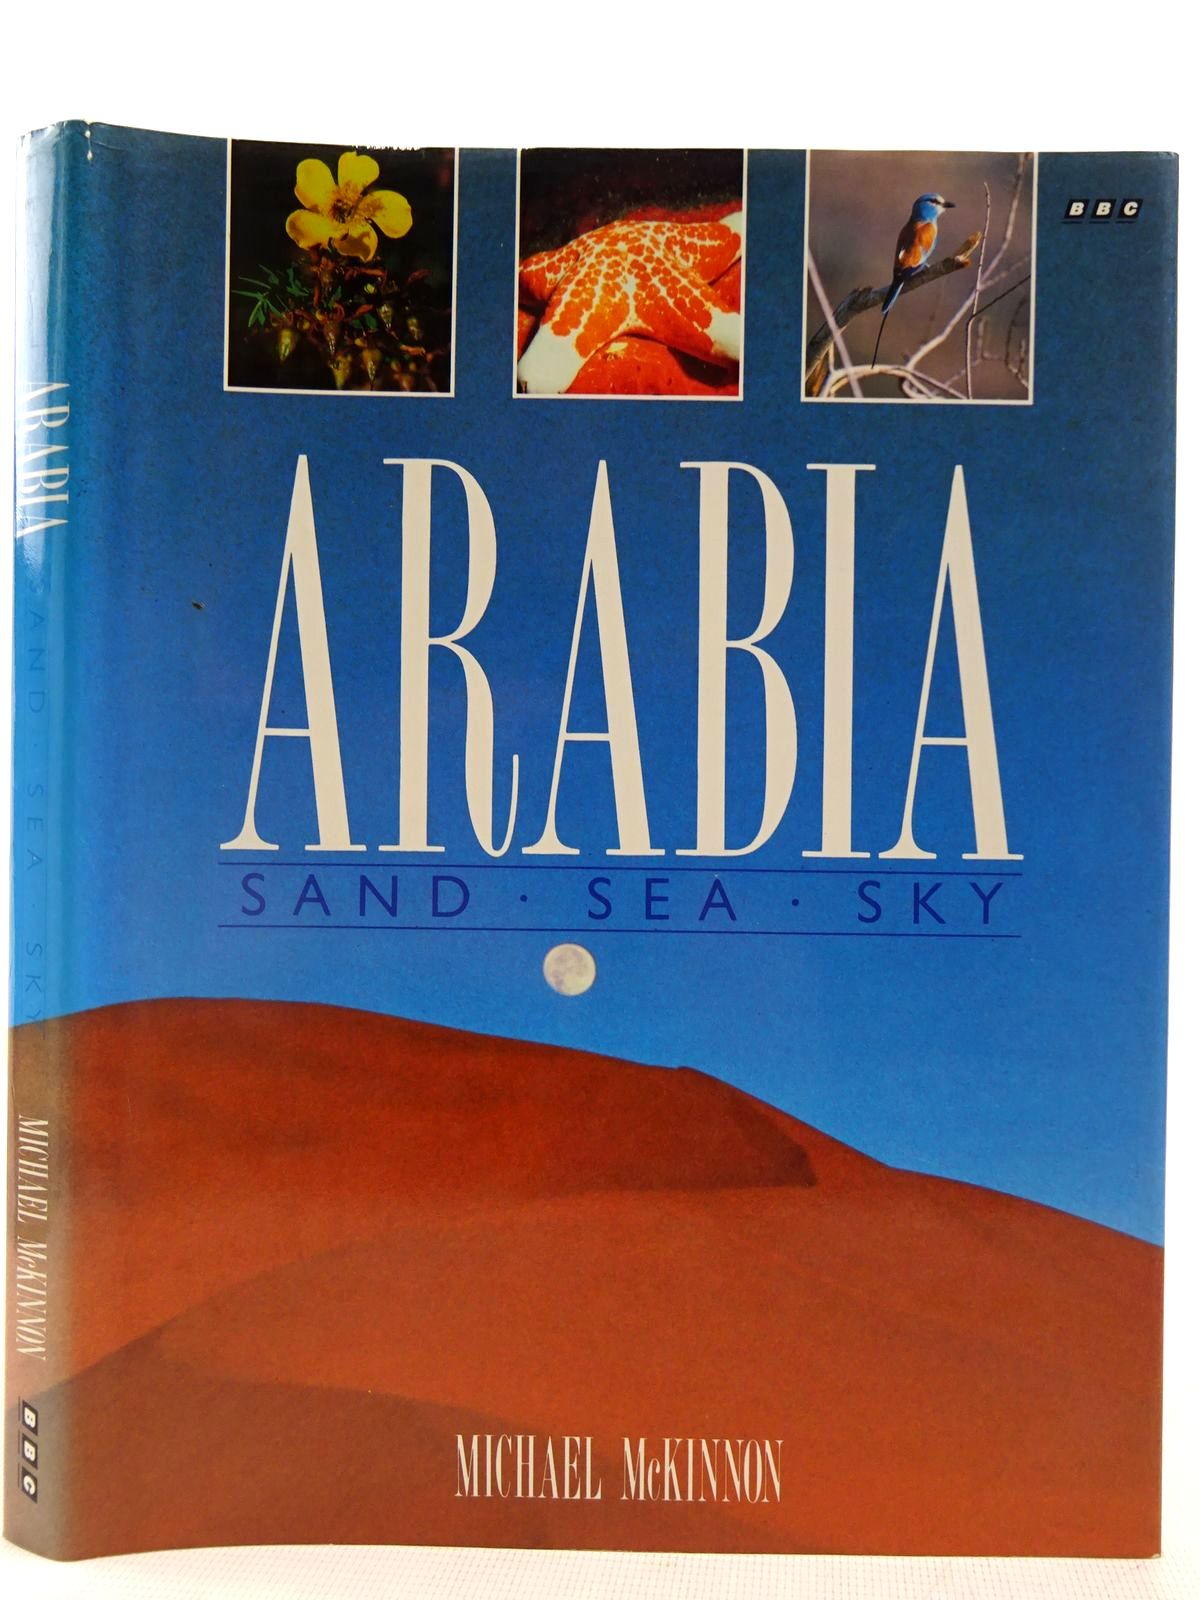 Photo of ARABIA SAND SEA SKY written by McKinnon, Michael published by BBC Books (STOCK CODE: 2128285)  for sale by Stella & Rose's Books